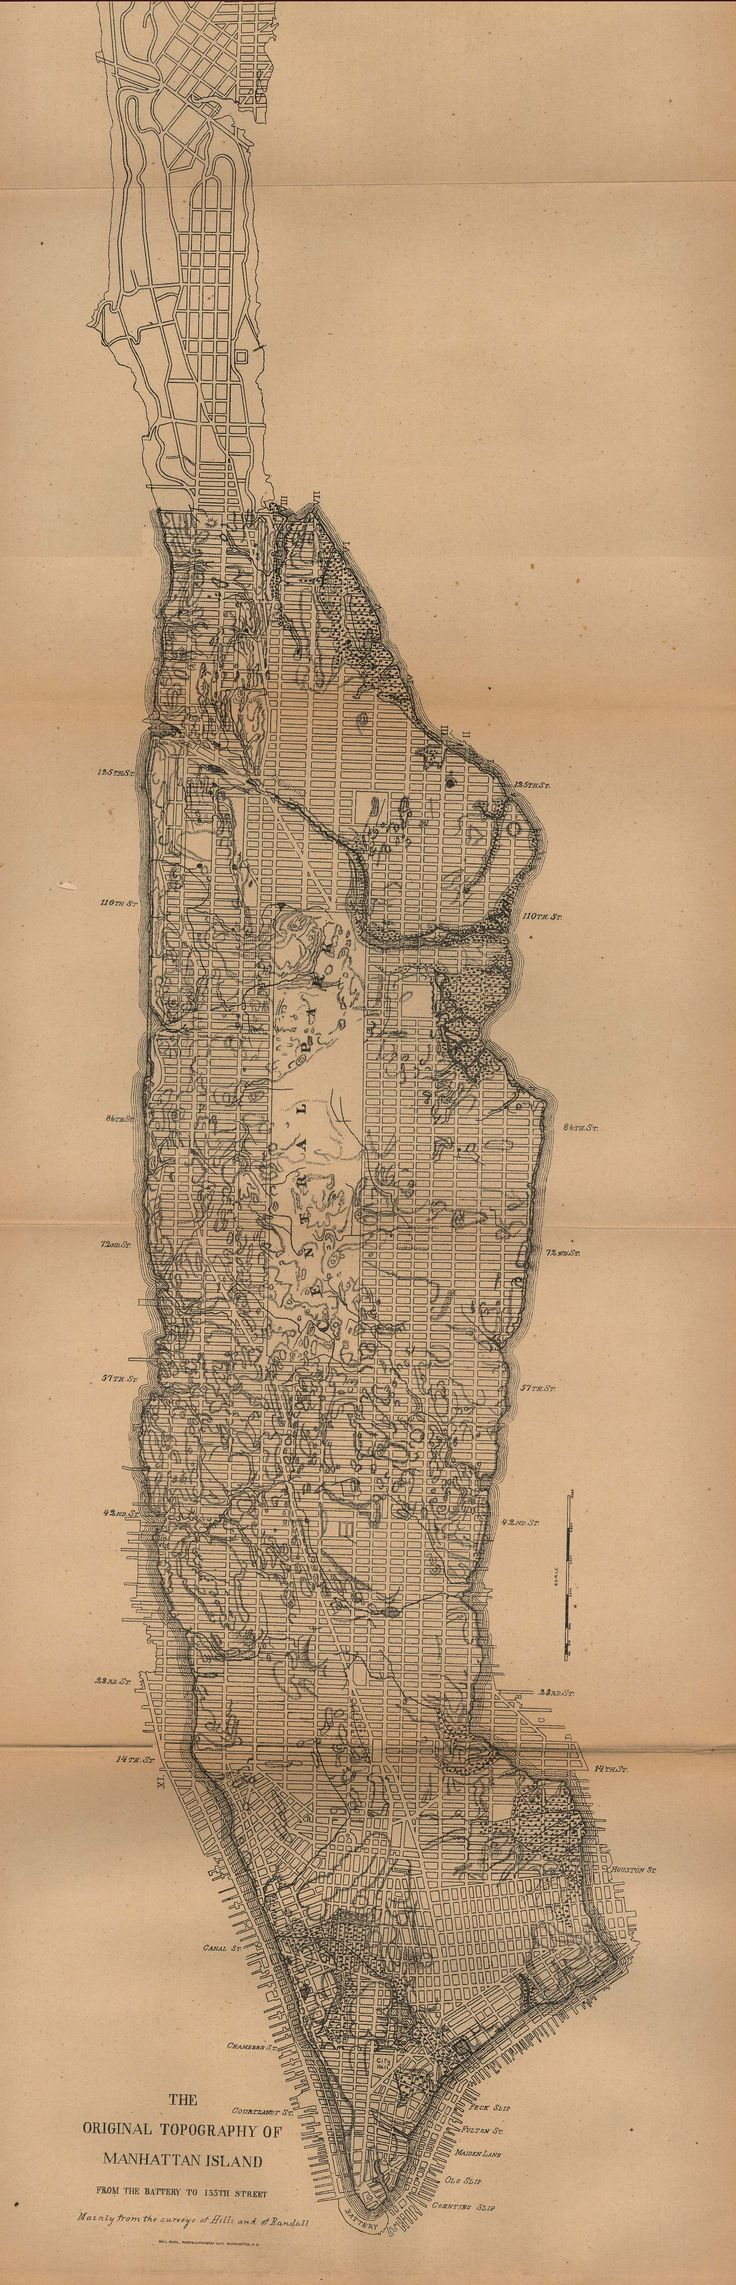 The Original Topography of Manhattan Island from the Battery to 155th Street, 1880 #nyc #map #manhattan